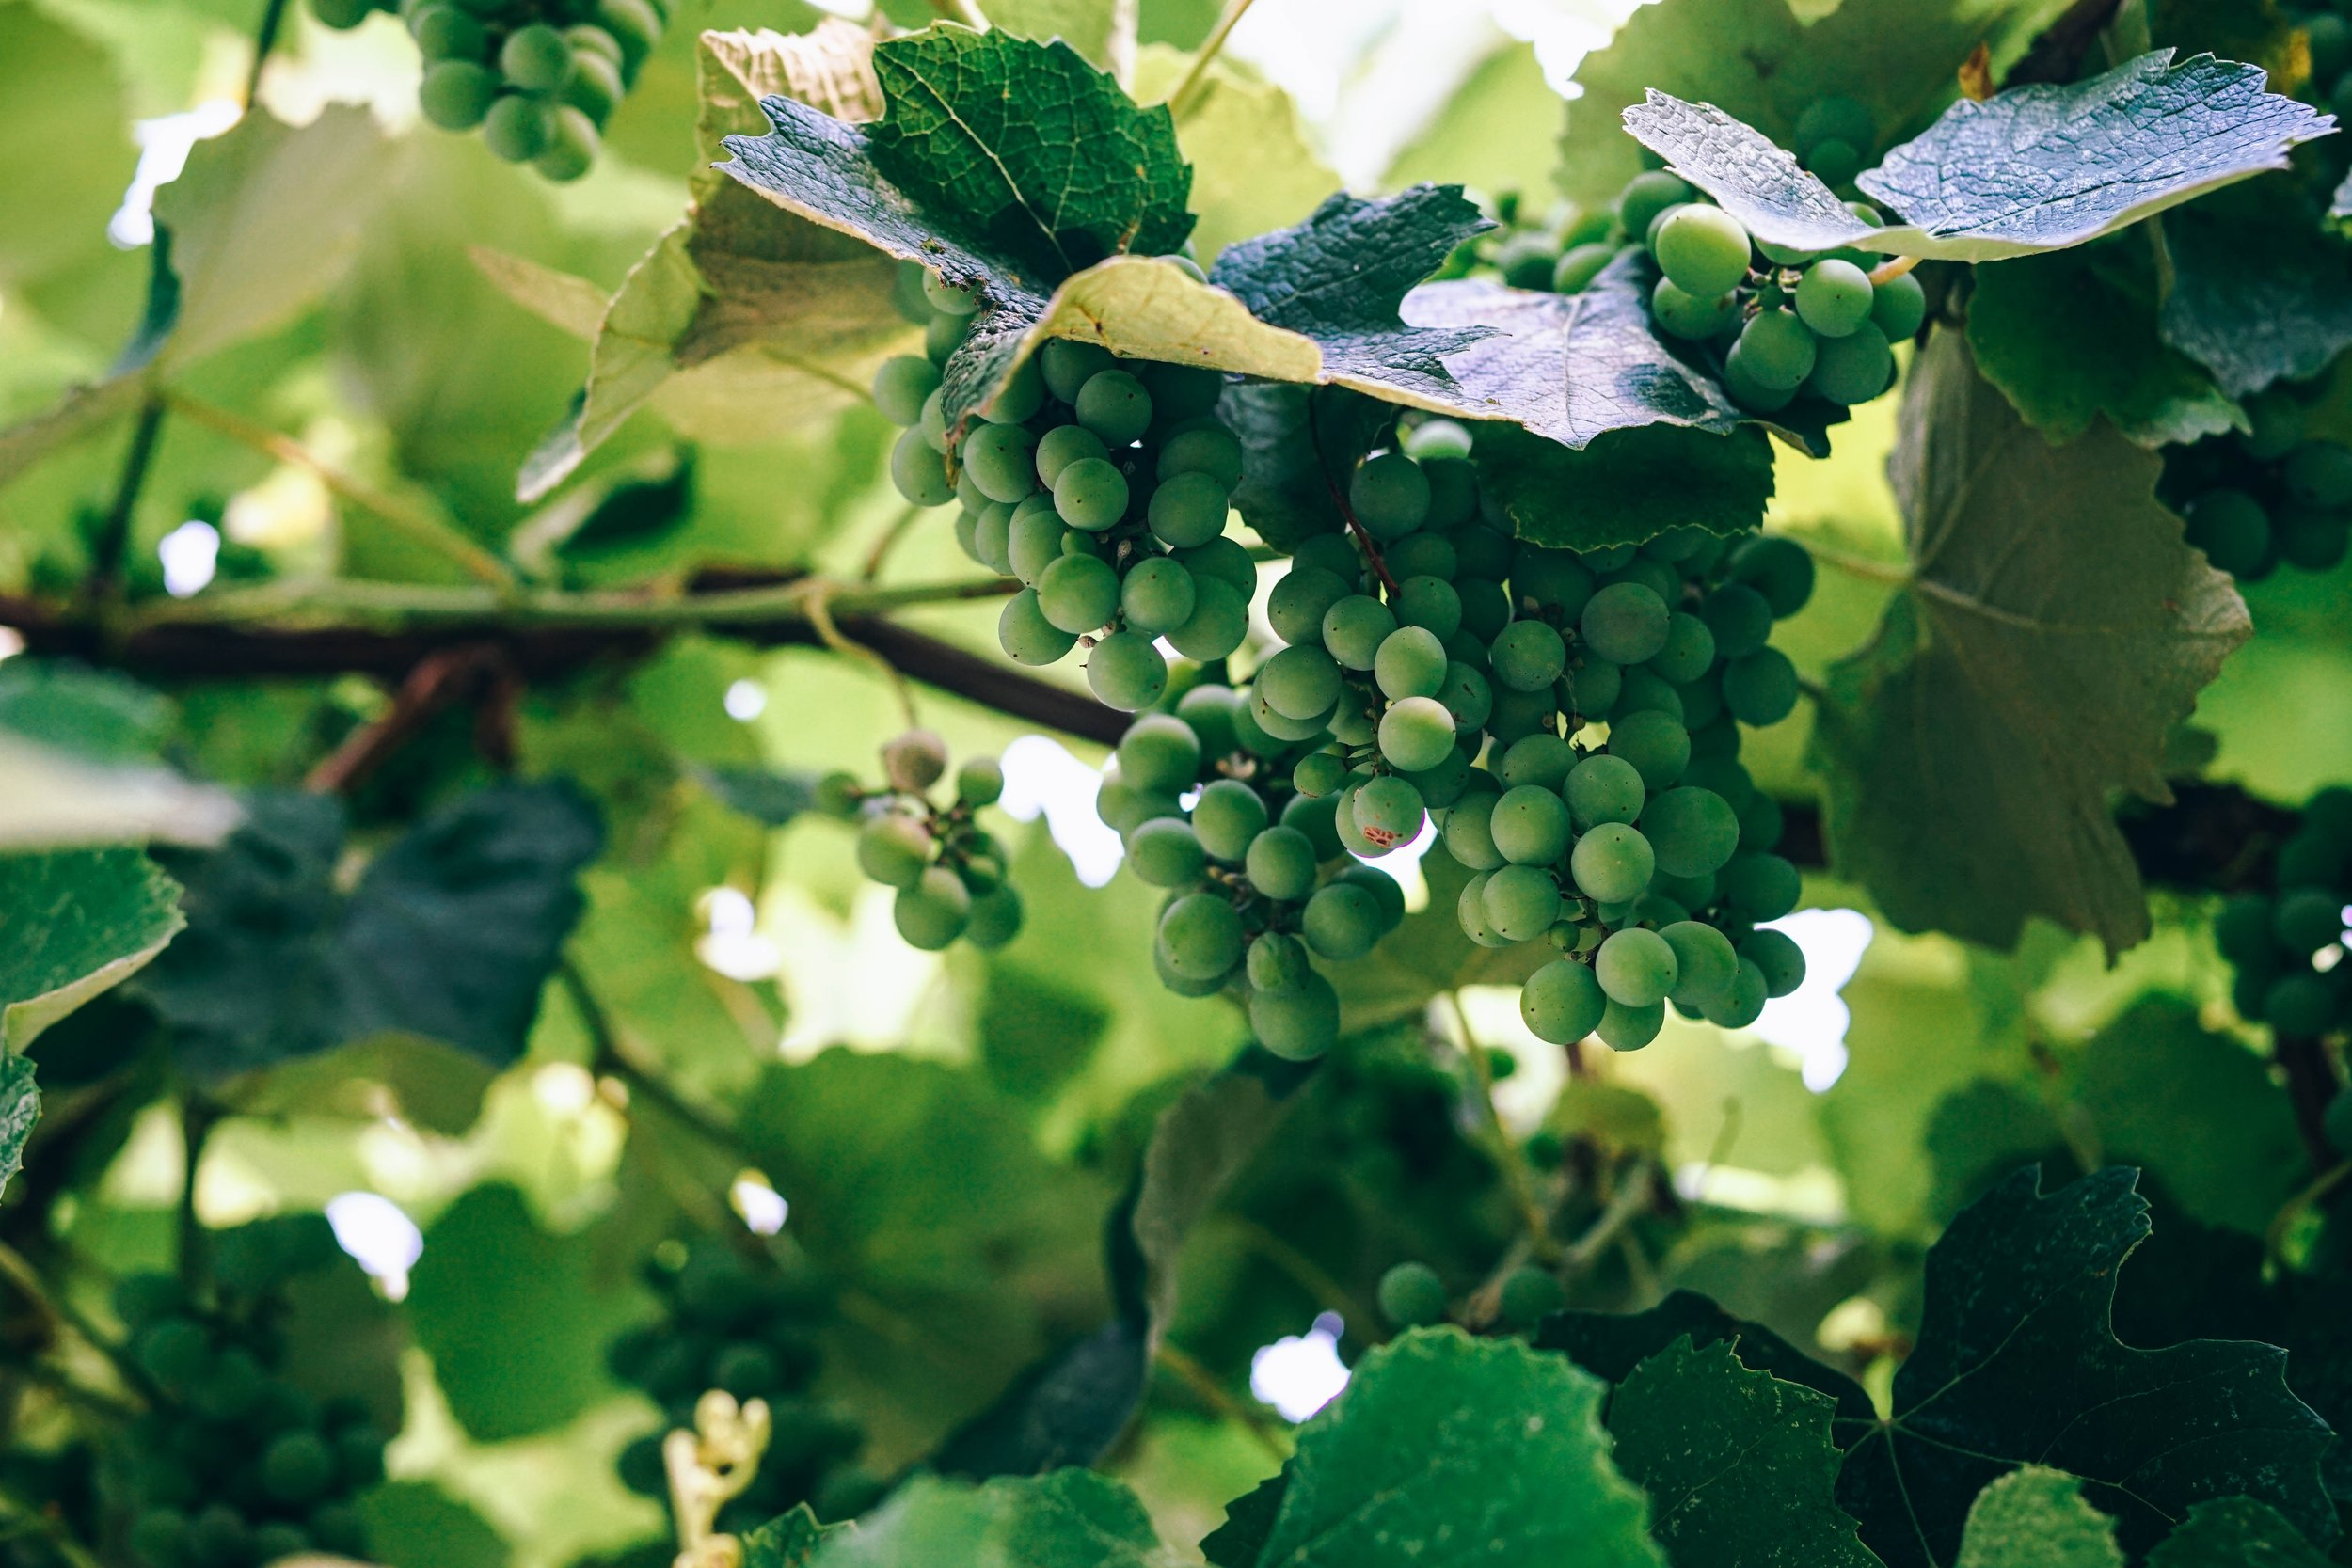 GRAPES - We are planting our first 8ha vineyard in 2019 with Chardonnay vines. The grapes that are produced are destined to be made into high quality English Sparkling Wine.